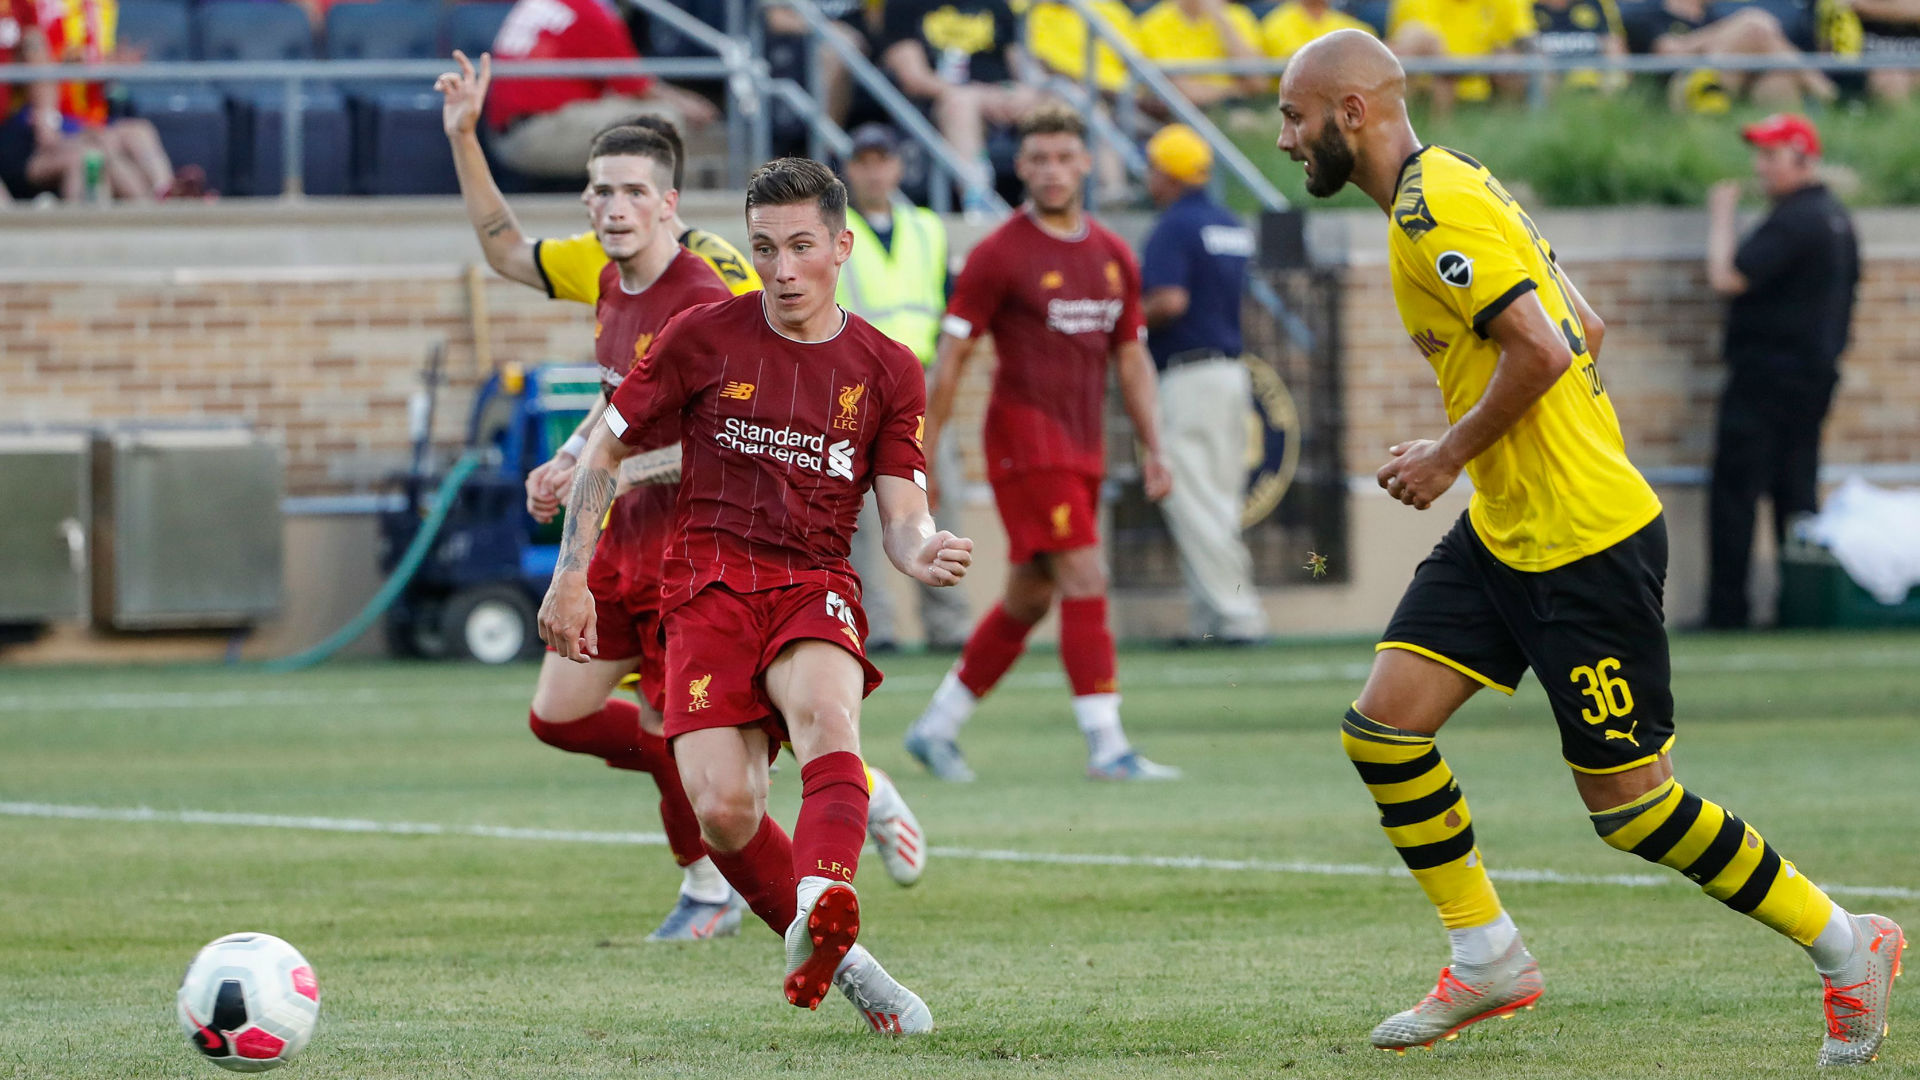 Jurgen Klopp optimistic despite loss against Borussia Dortmund in pre-season friendly